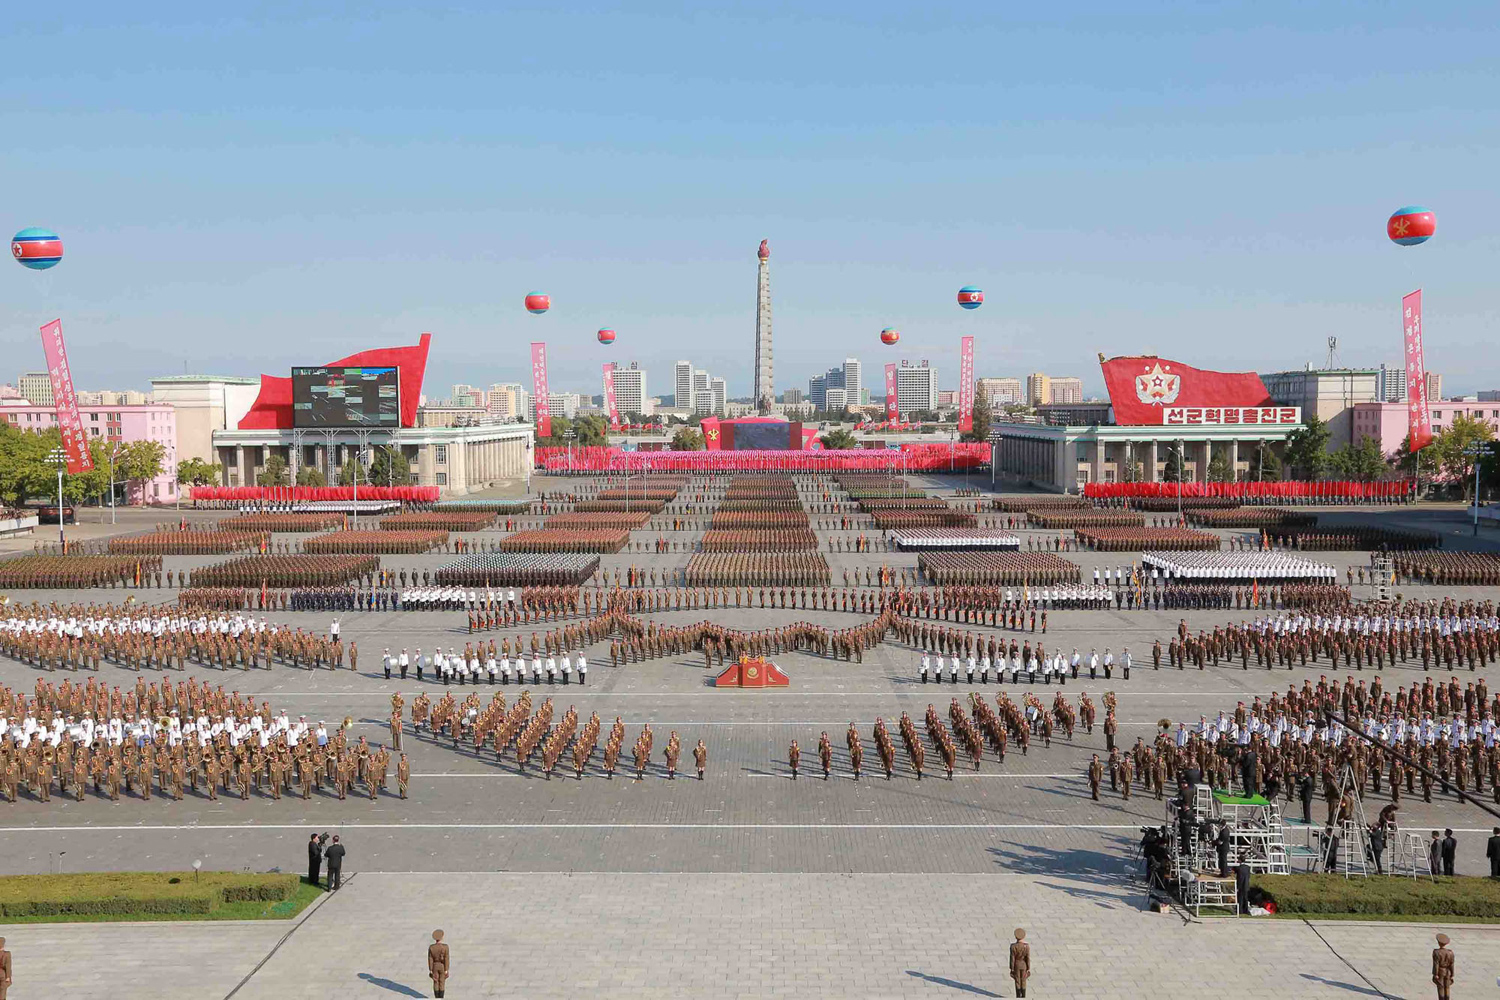 North Korea Marks 70 Years of Workers' Party Rule 13